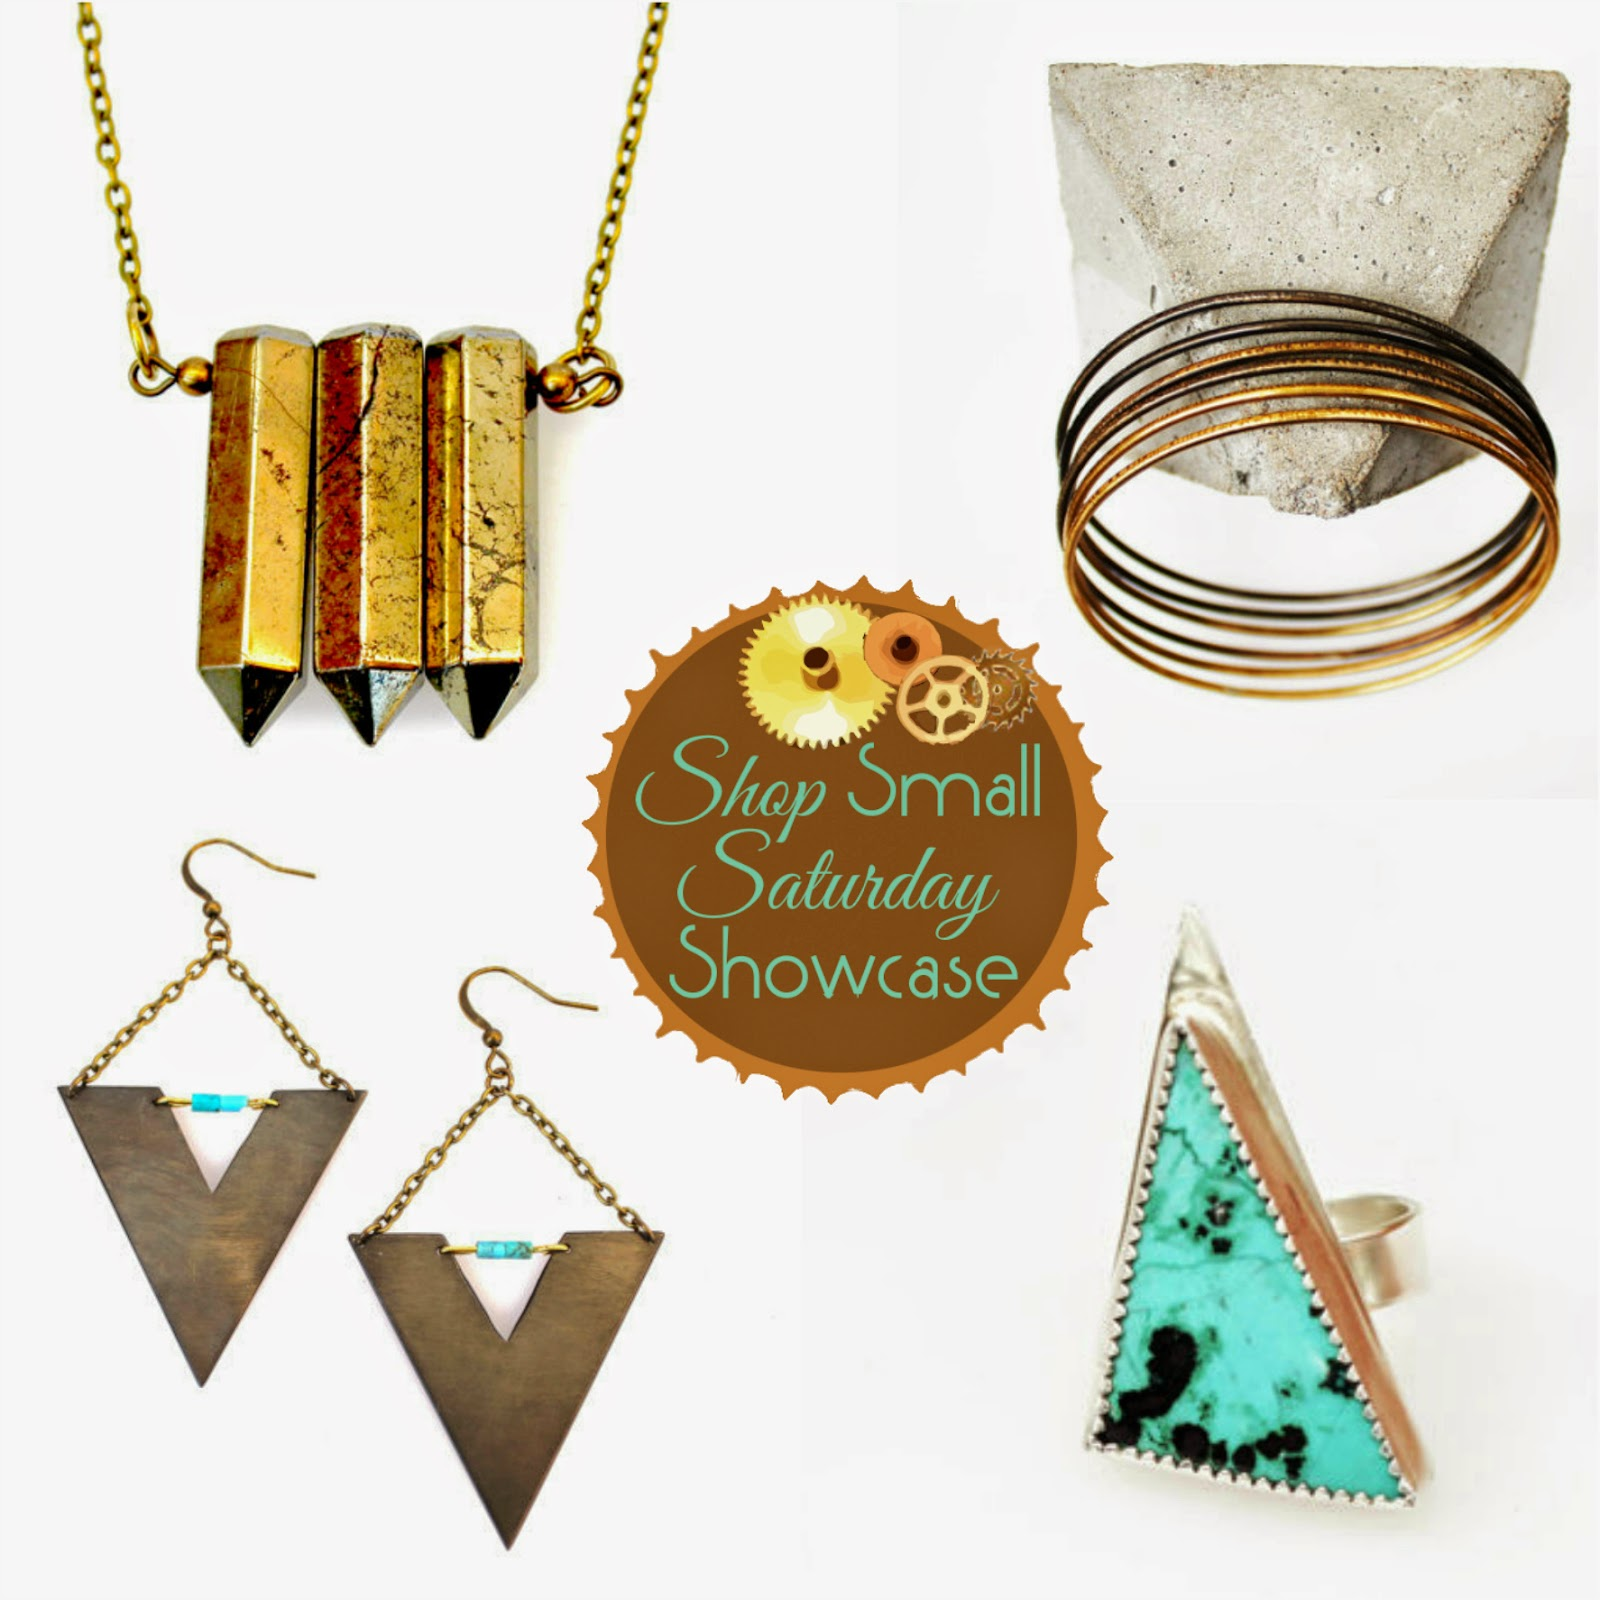 Crow Jane Jewelry feature, promo and GIVEAWAY on Shop Small Saturday at Diane's Vintage Zest!